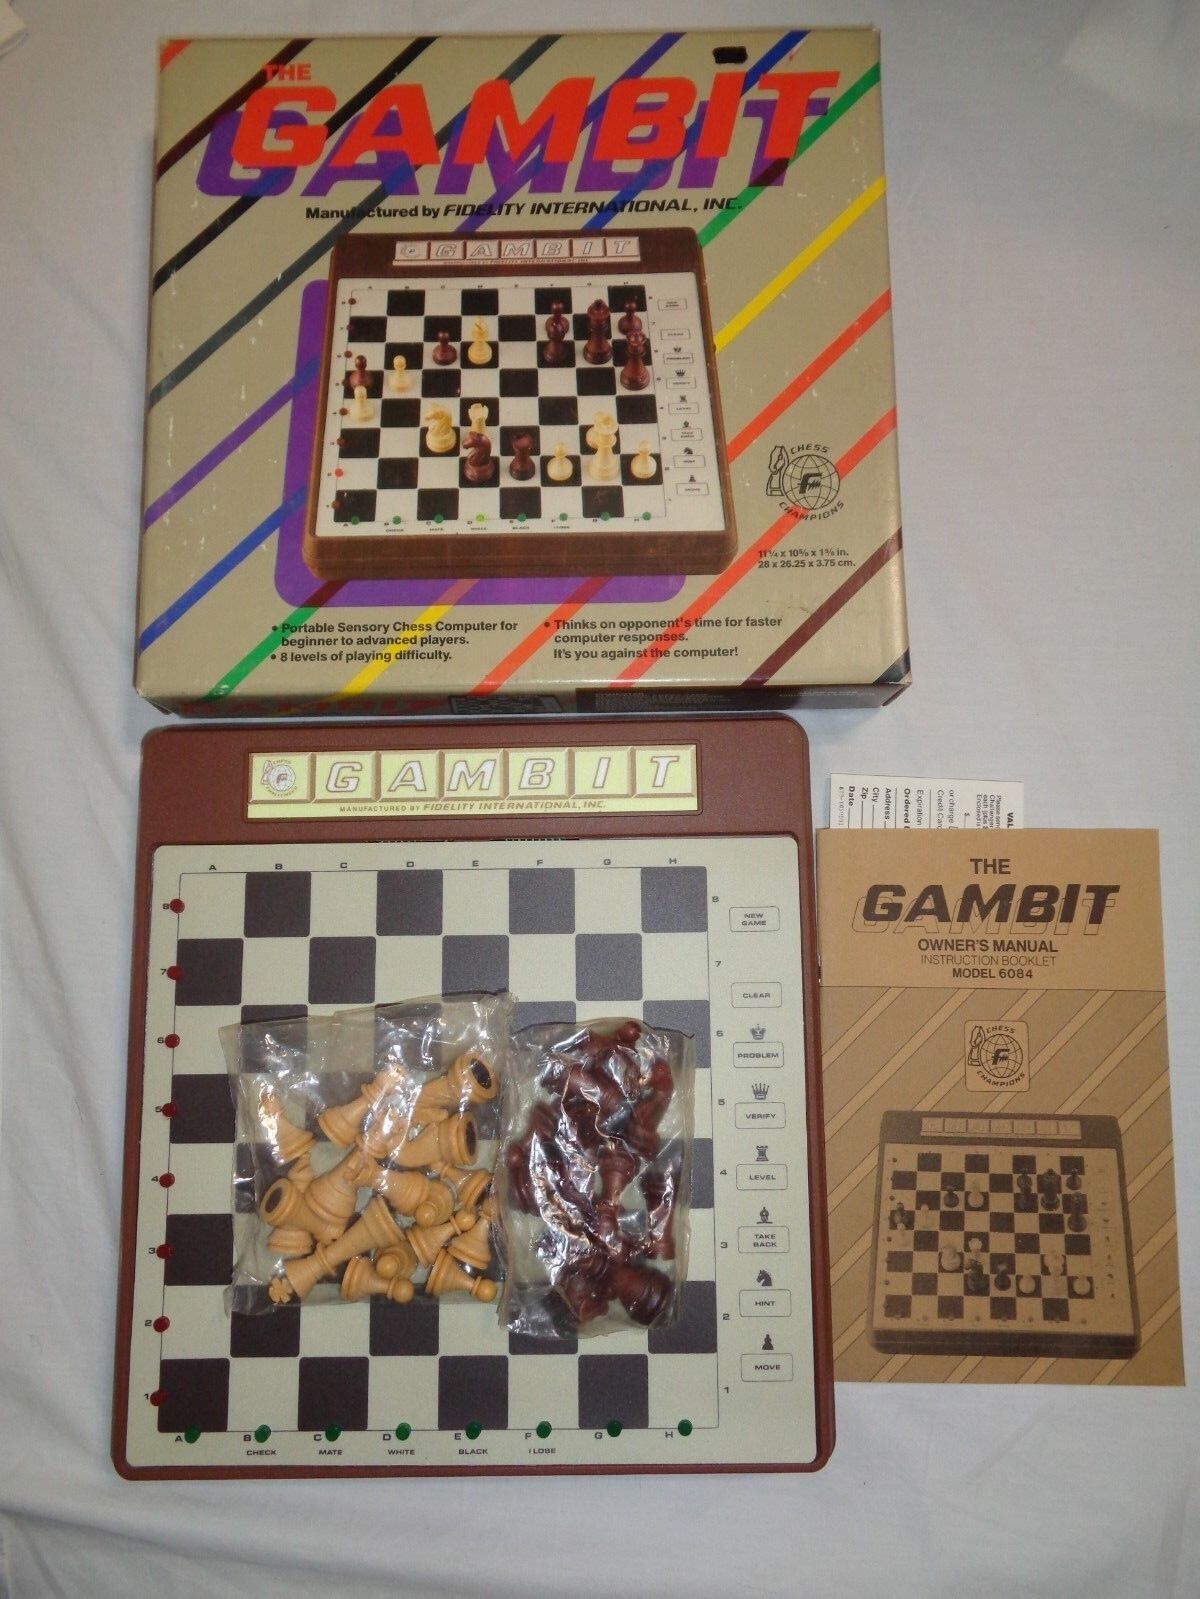 THE GAMBIT Chess Computer Model 6084 by Fidelity International, INC.